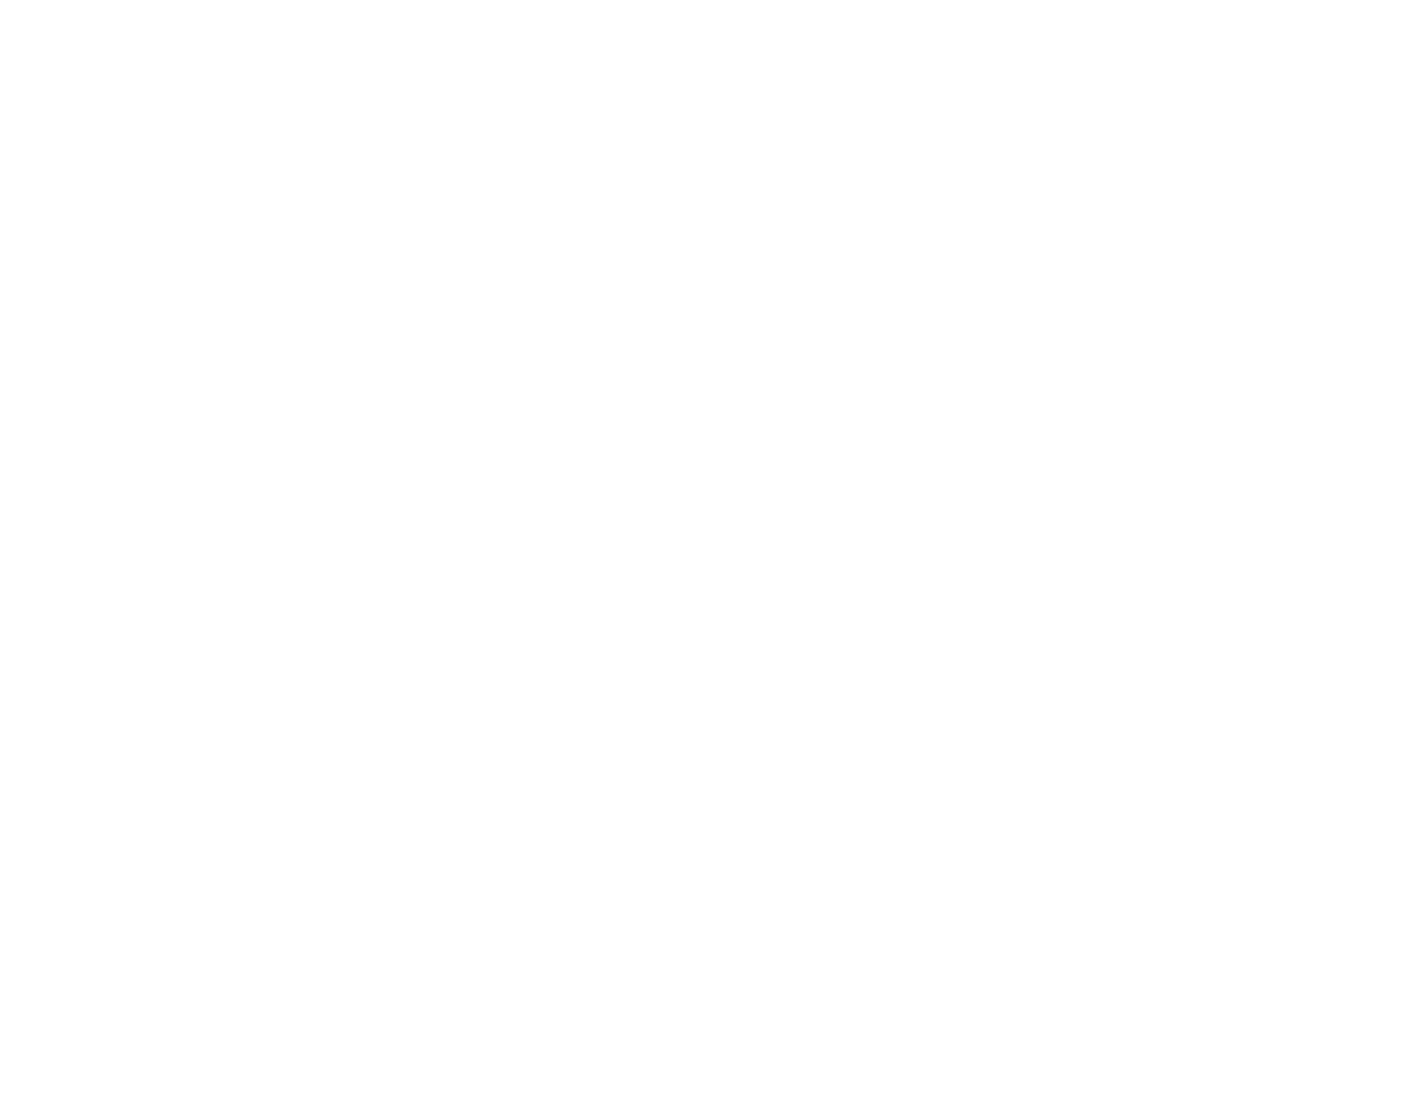 About Rescued Logs logo